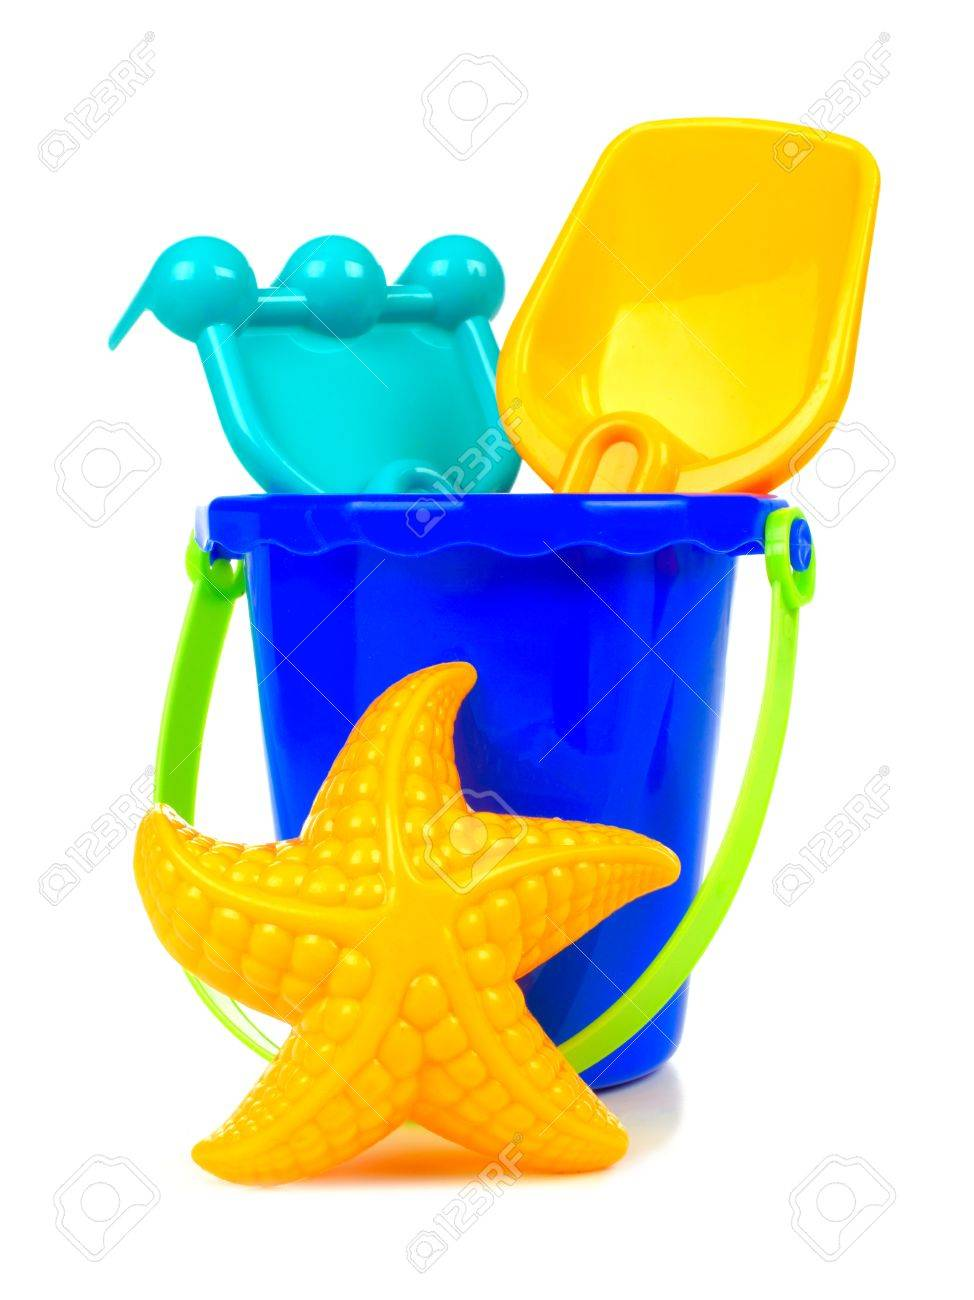 Uncategorized Toy Pail toy sand pail with rake shovel and starfish over a white background stock photo